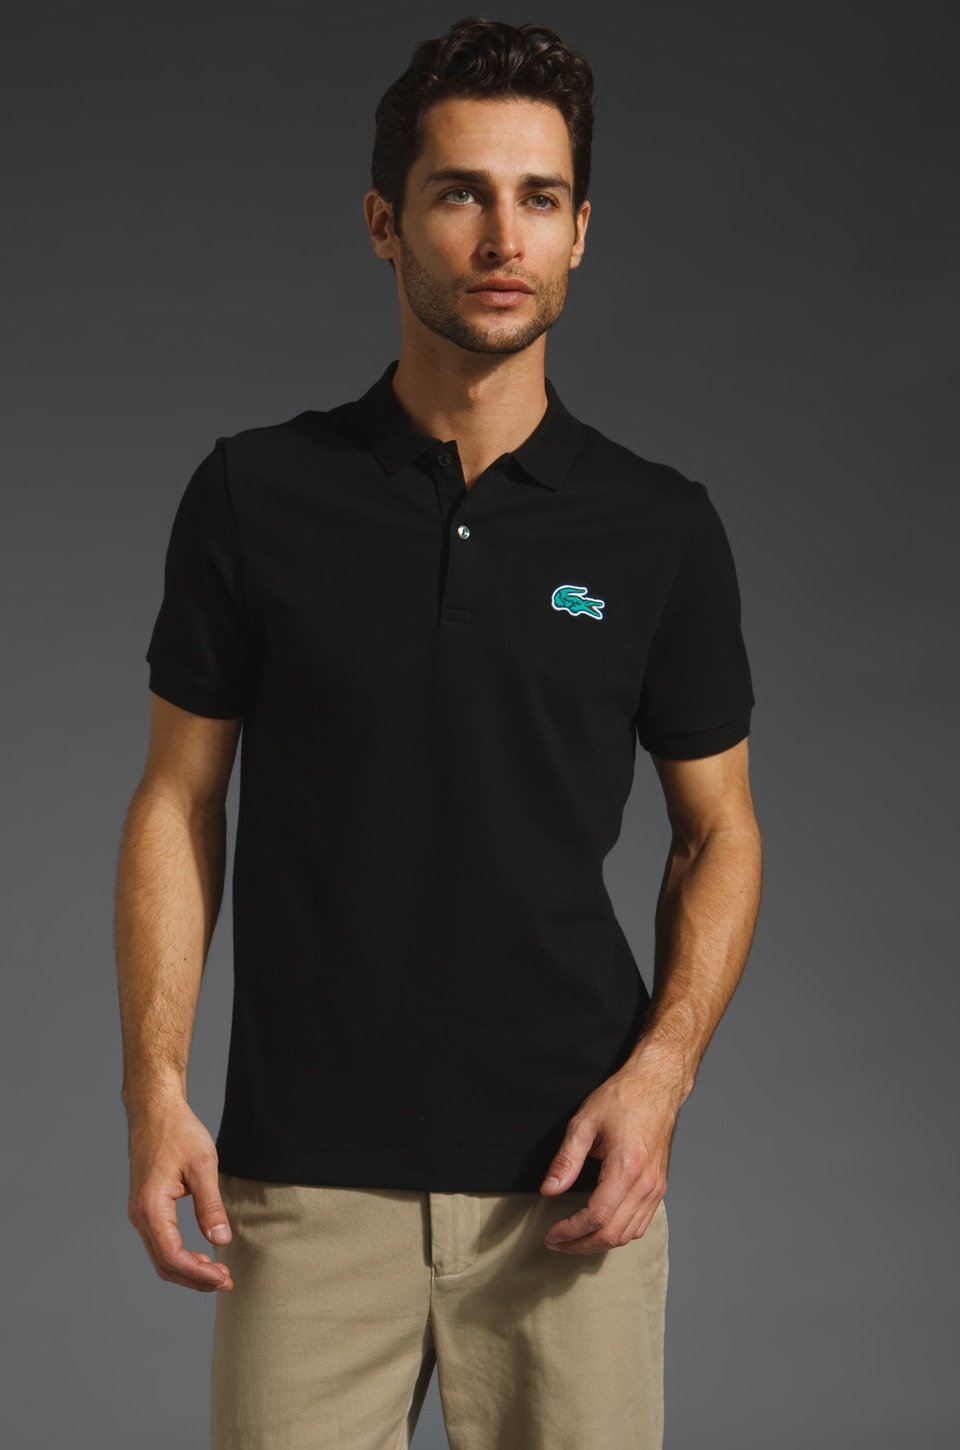 Lacoste Solid Polo with Pique Croc in Black